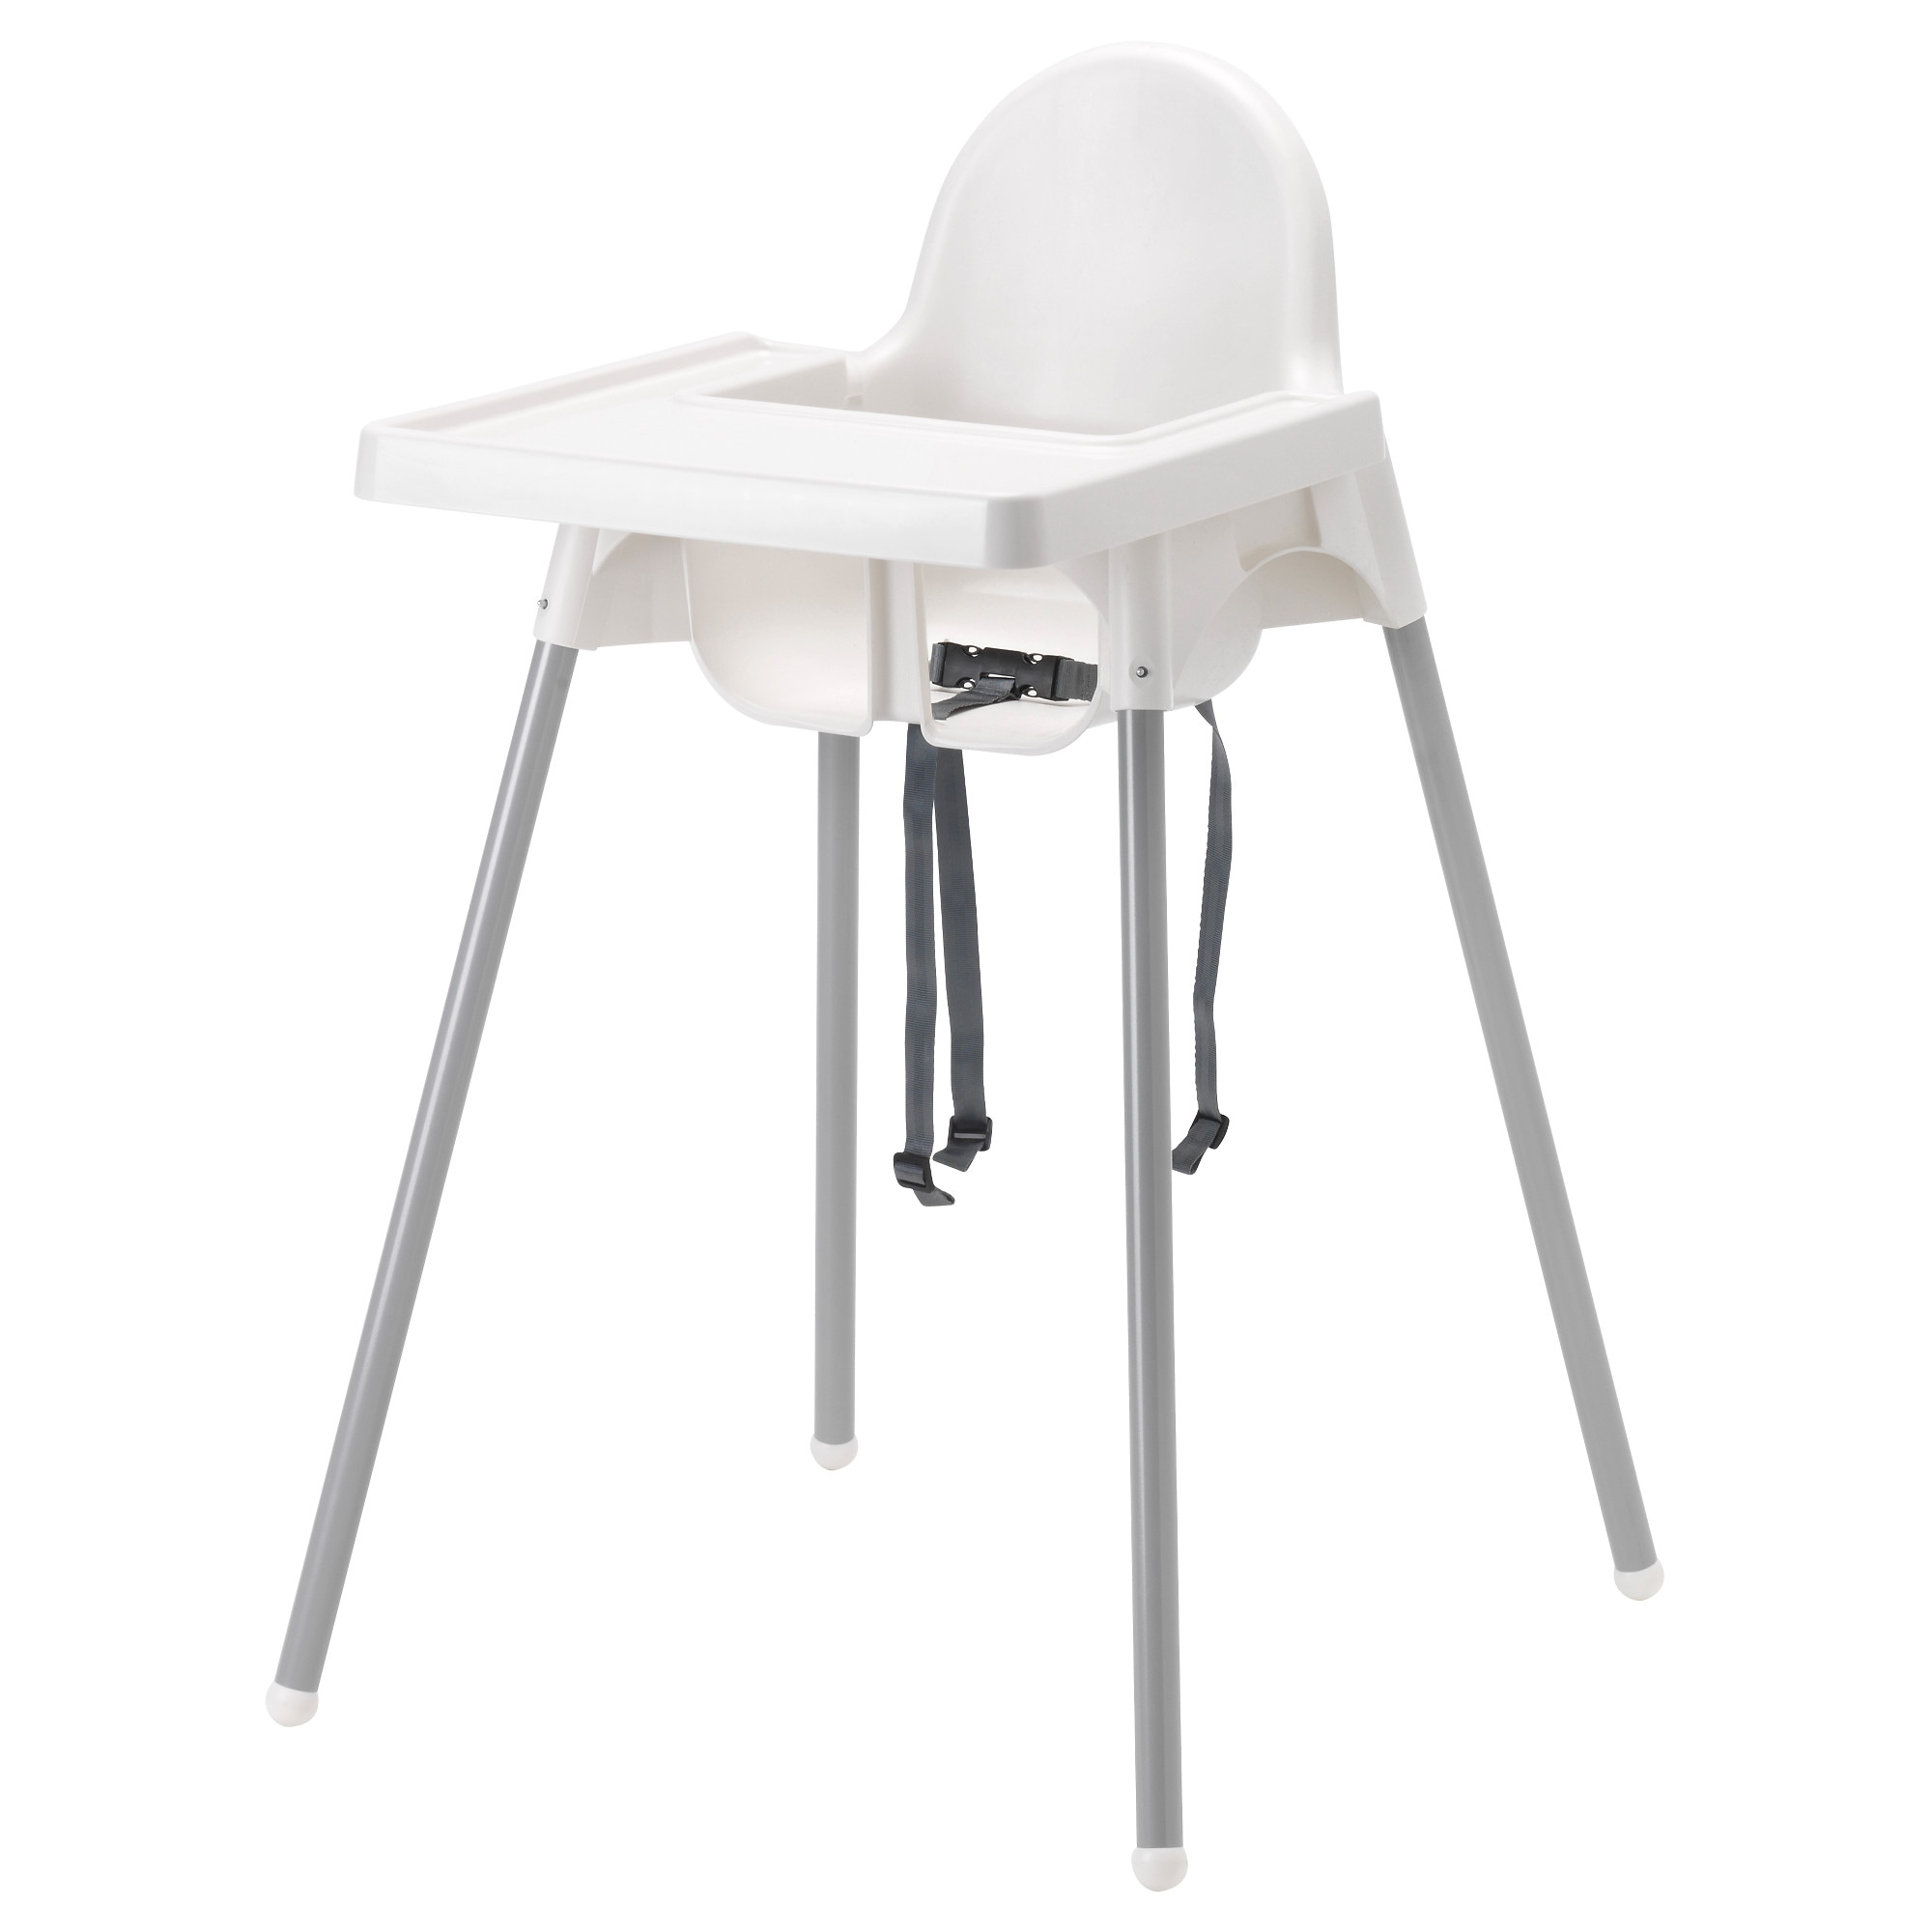 ANTILOP High chair with tray - IKEA